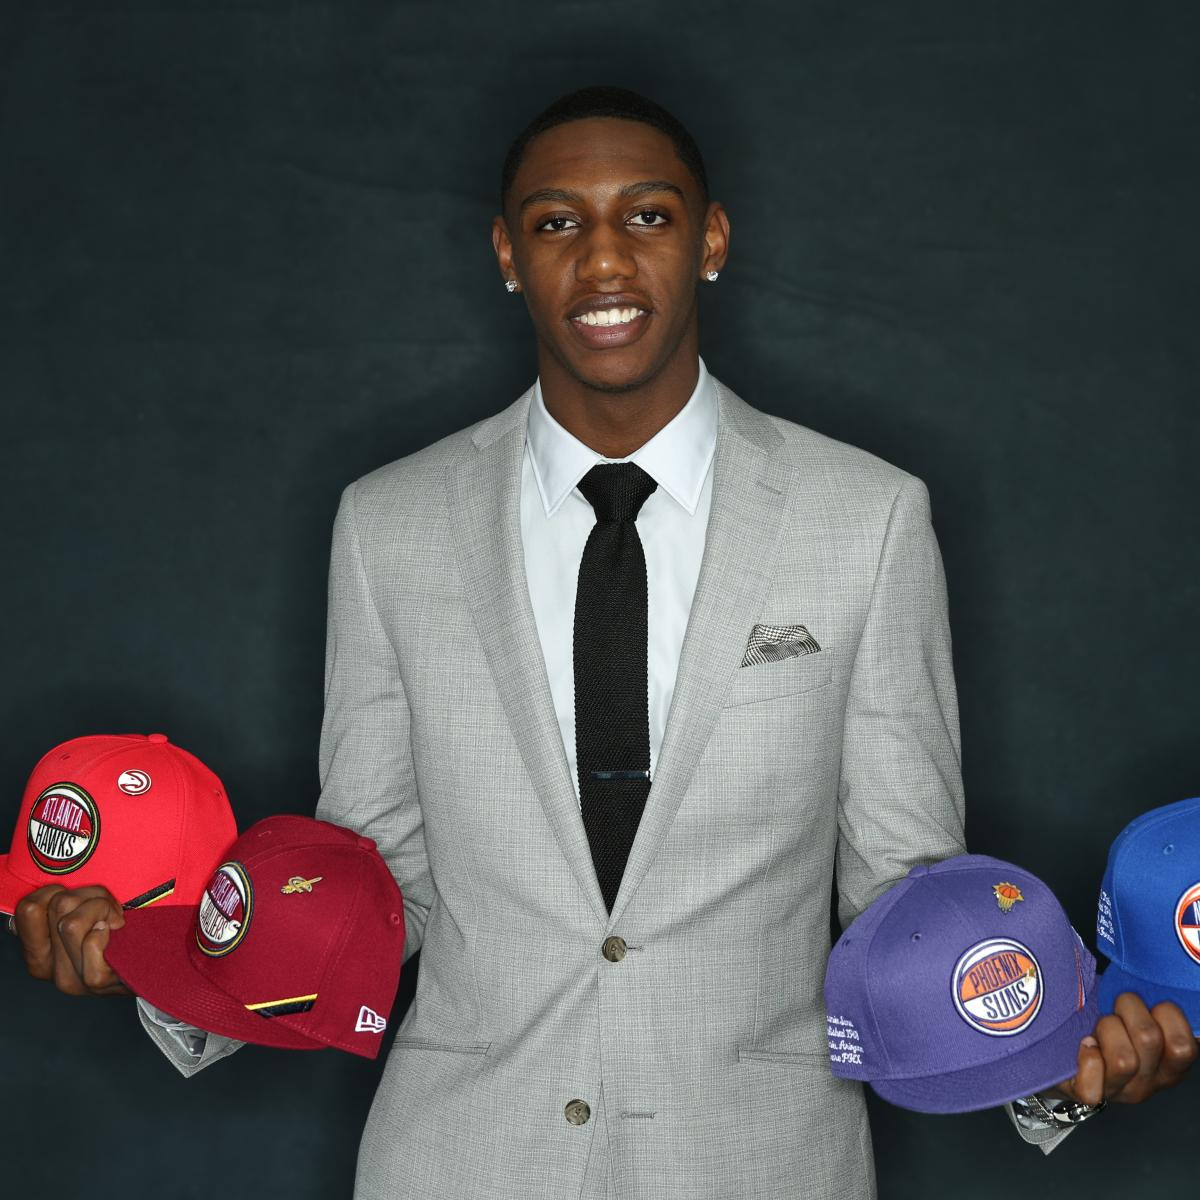 Nba2k19 James Harden: NBA Draft 2019 Rumors: Anonymous Execs Say RJ Barrett's